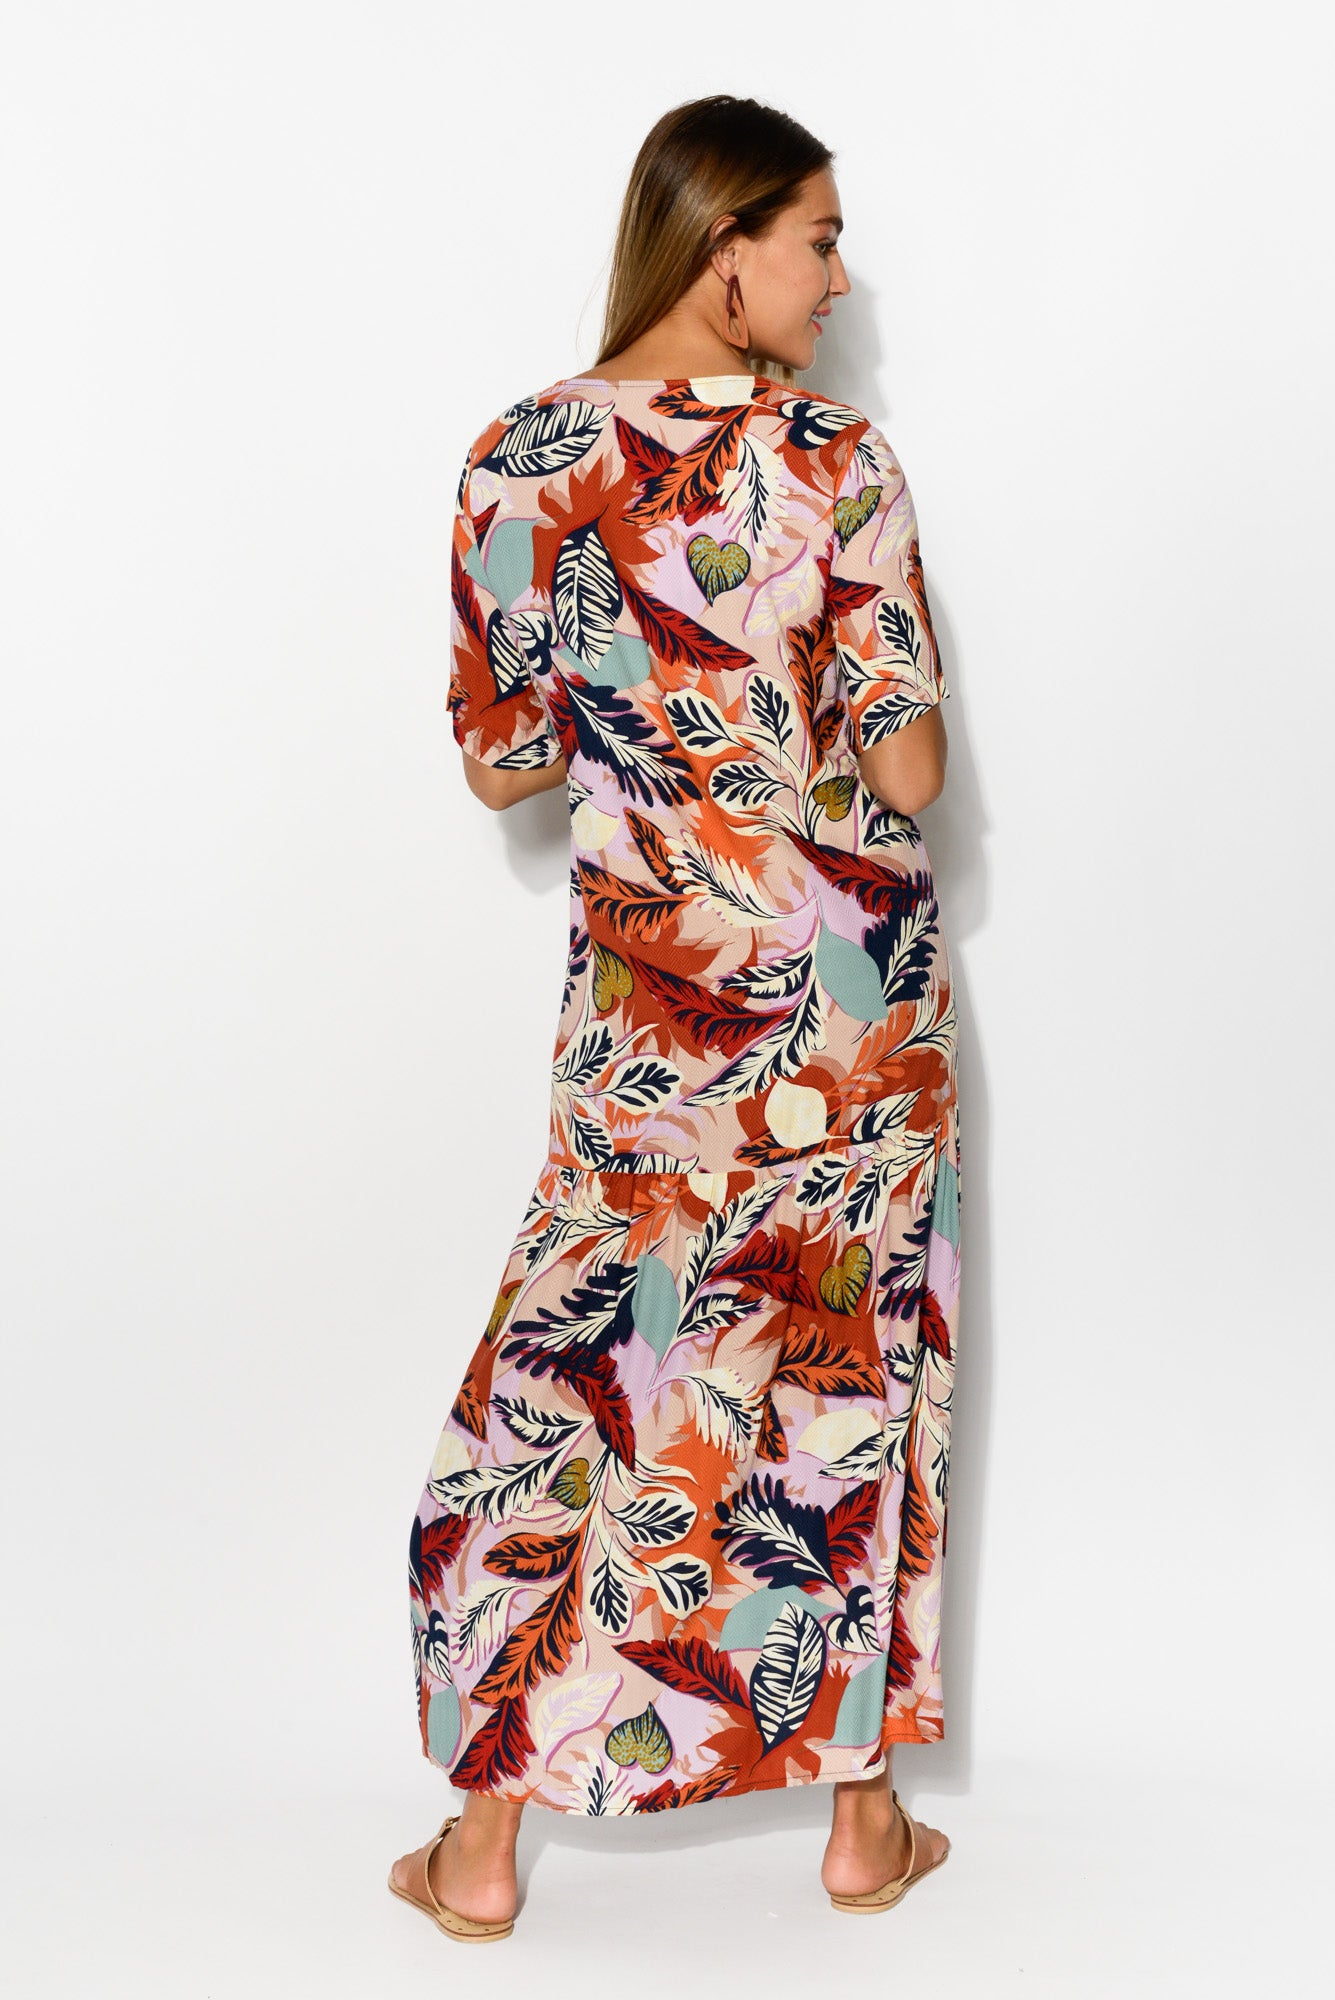 Autumn Leaf Peak Maxi Dress